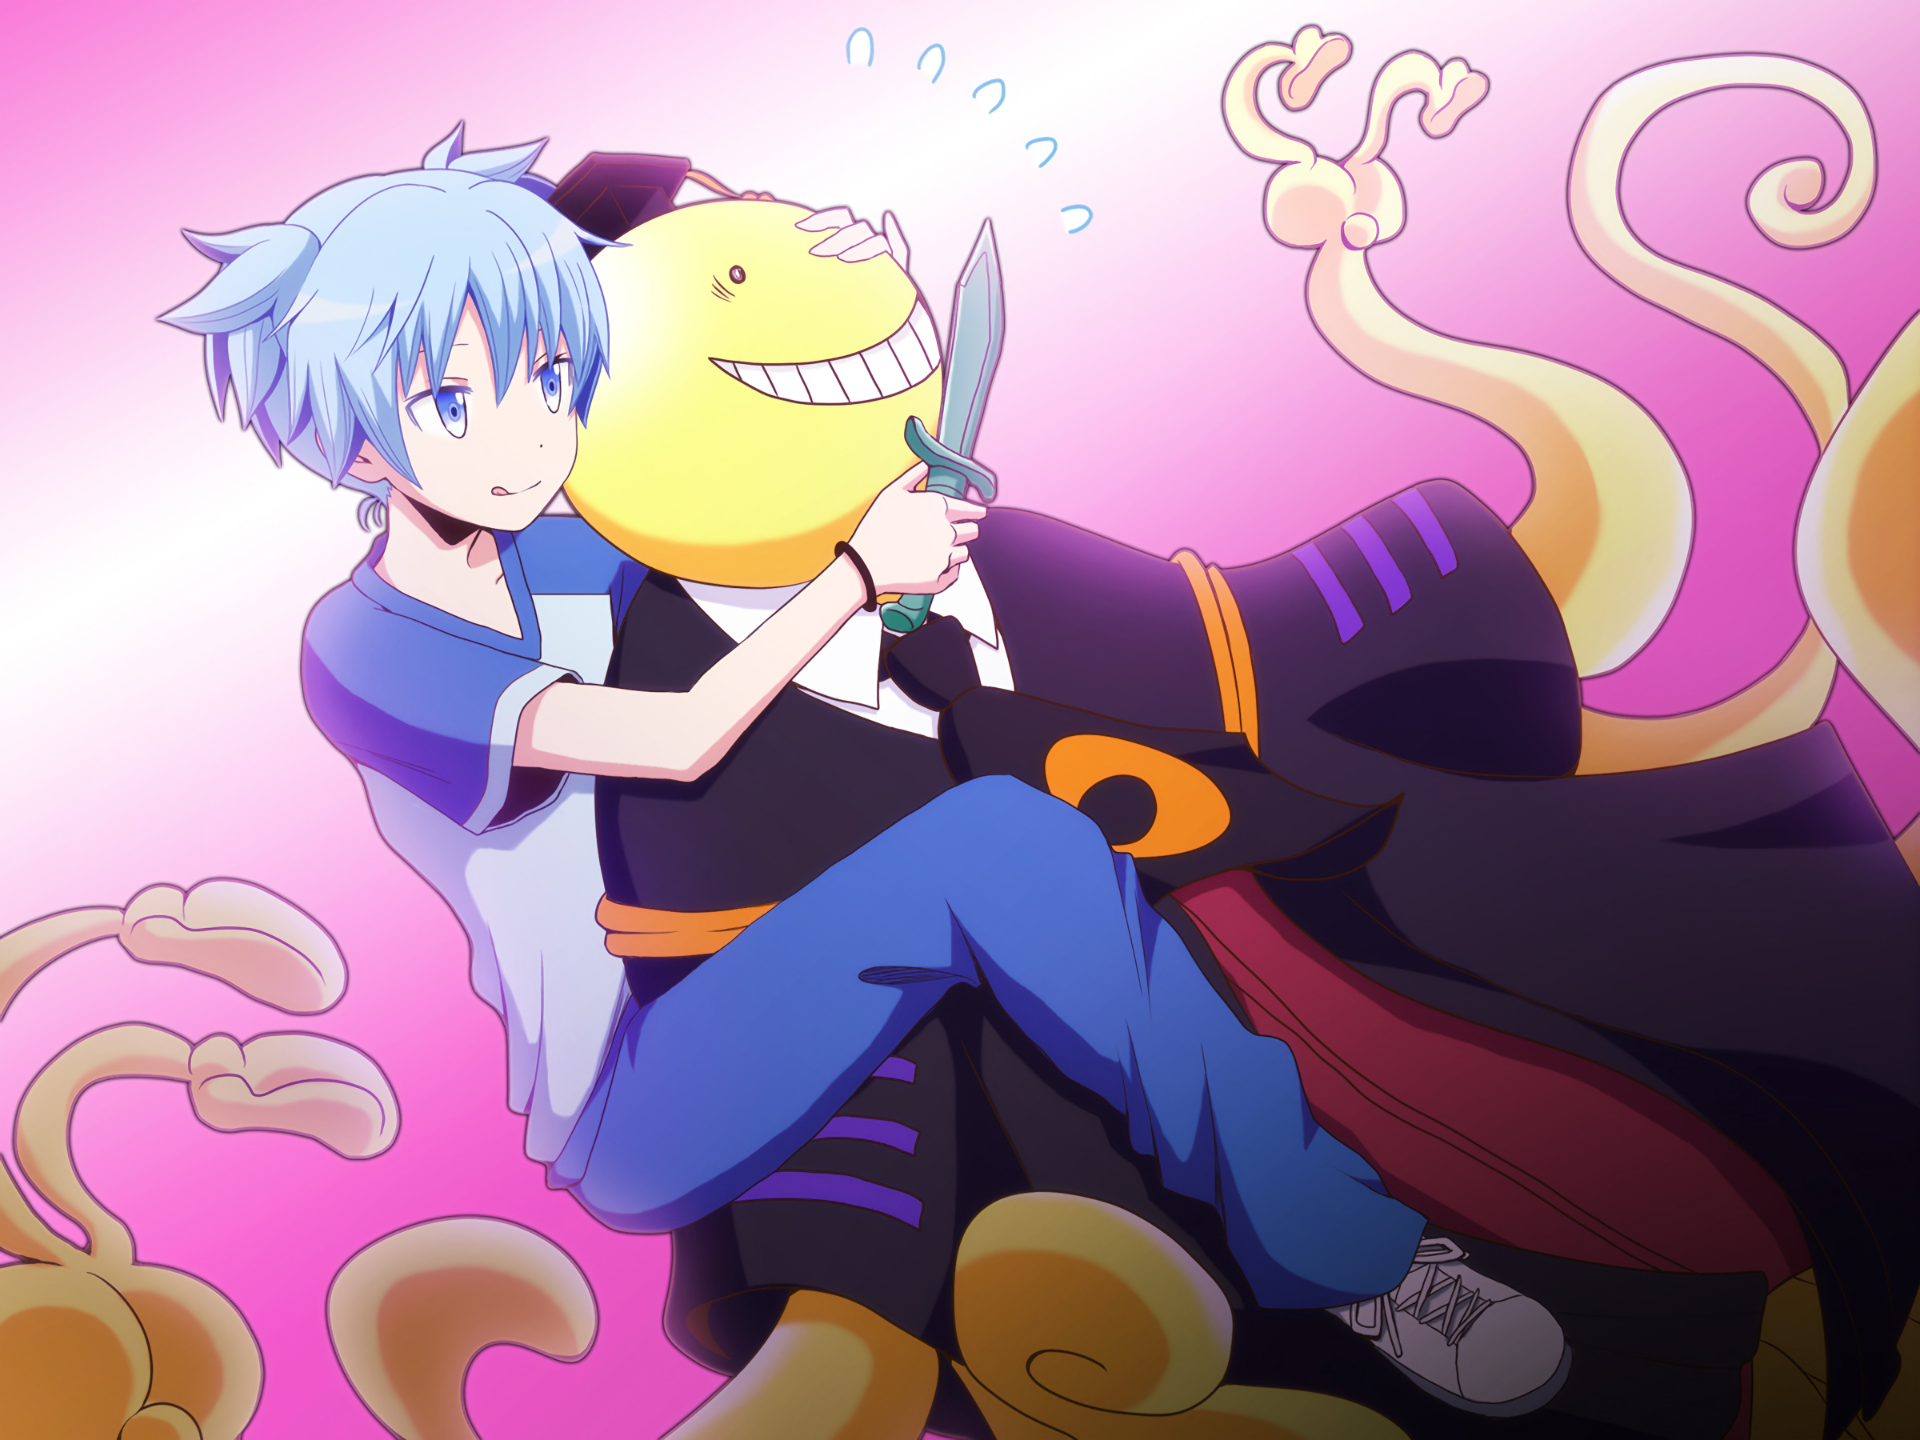 Anime assassination classroom koro sensei nagisa shiota - Anime wallpaper assassination classroom ...